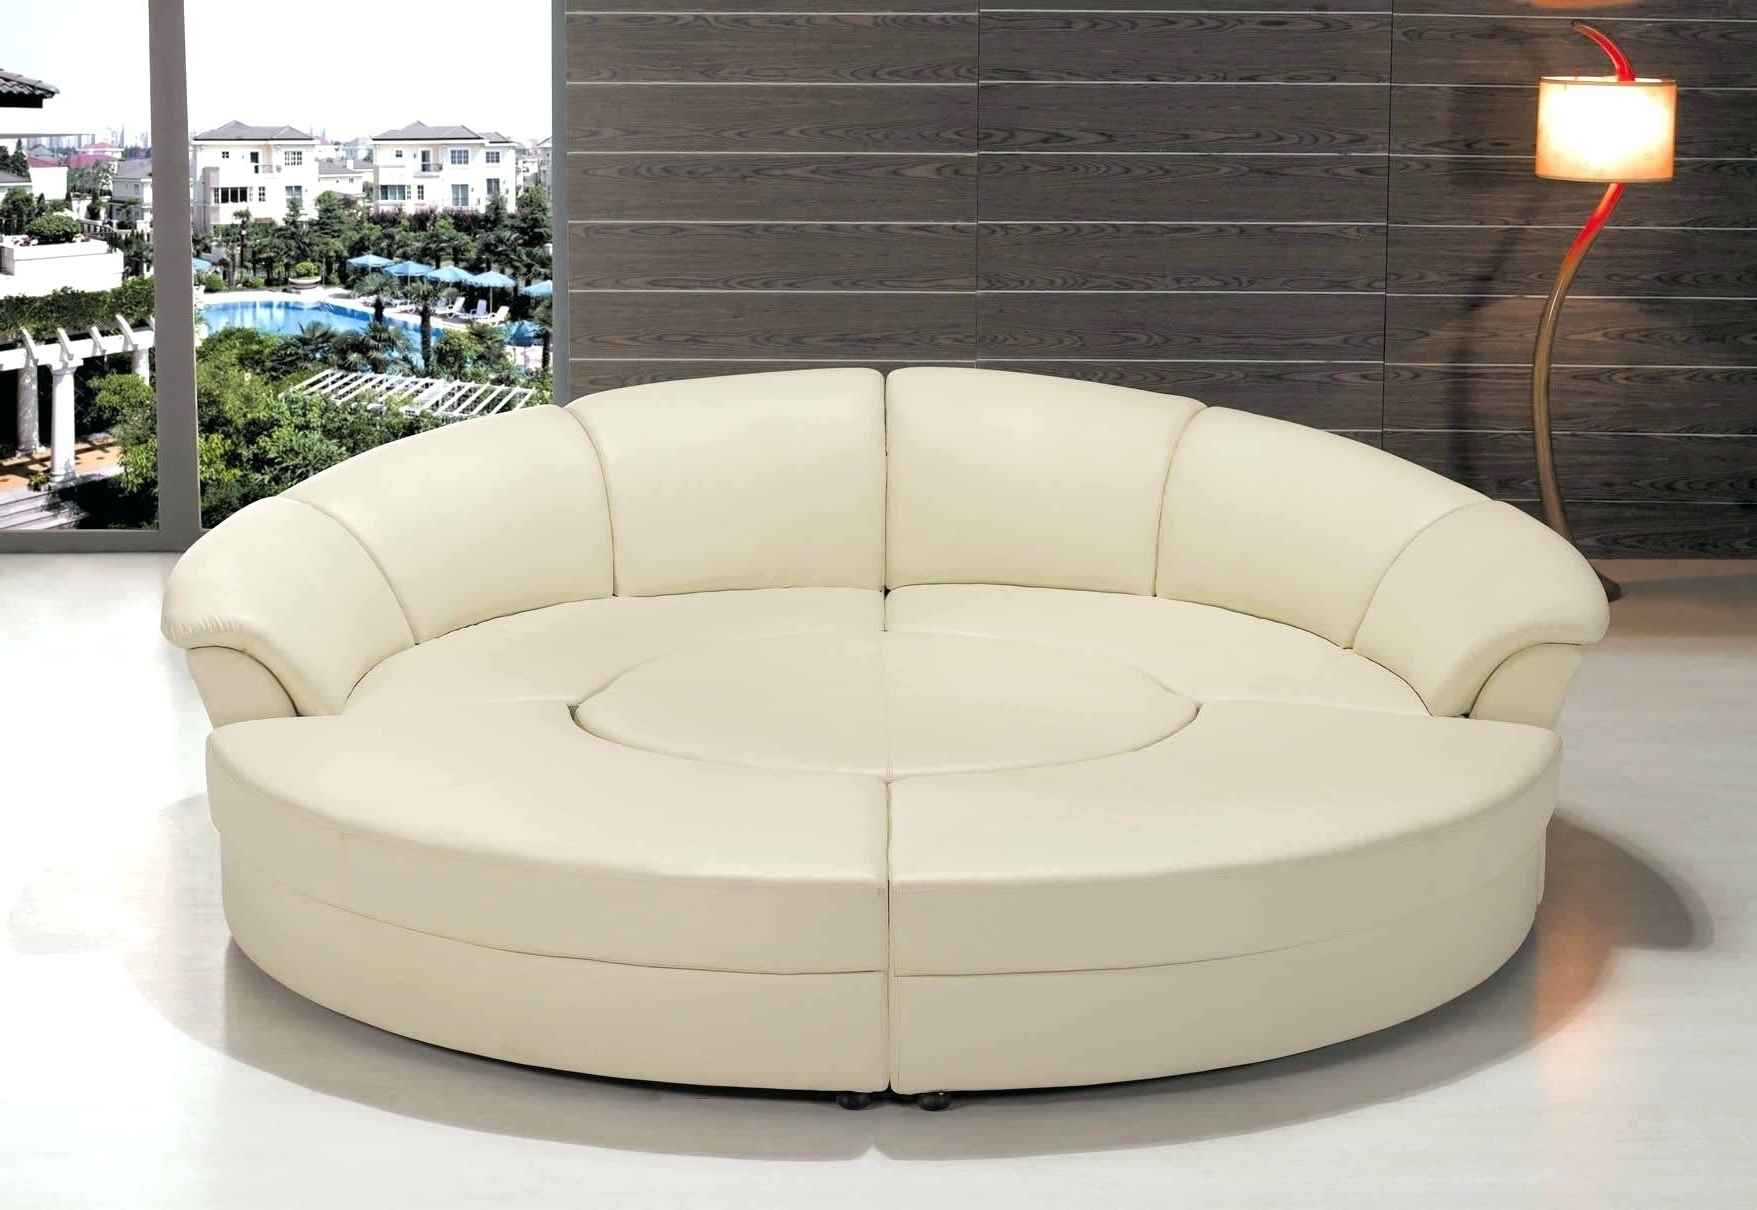 Furniture : Round Sectional Sofa Covers New Round Sofa Covers Inside 2019 Round Sectional Sofas (View 7 of 20)